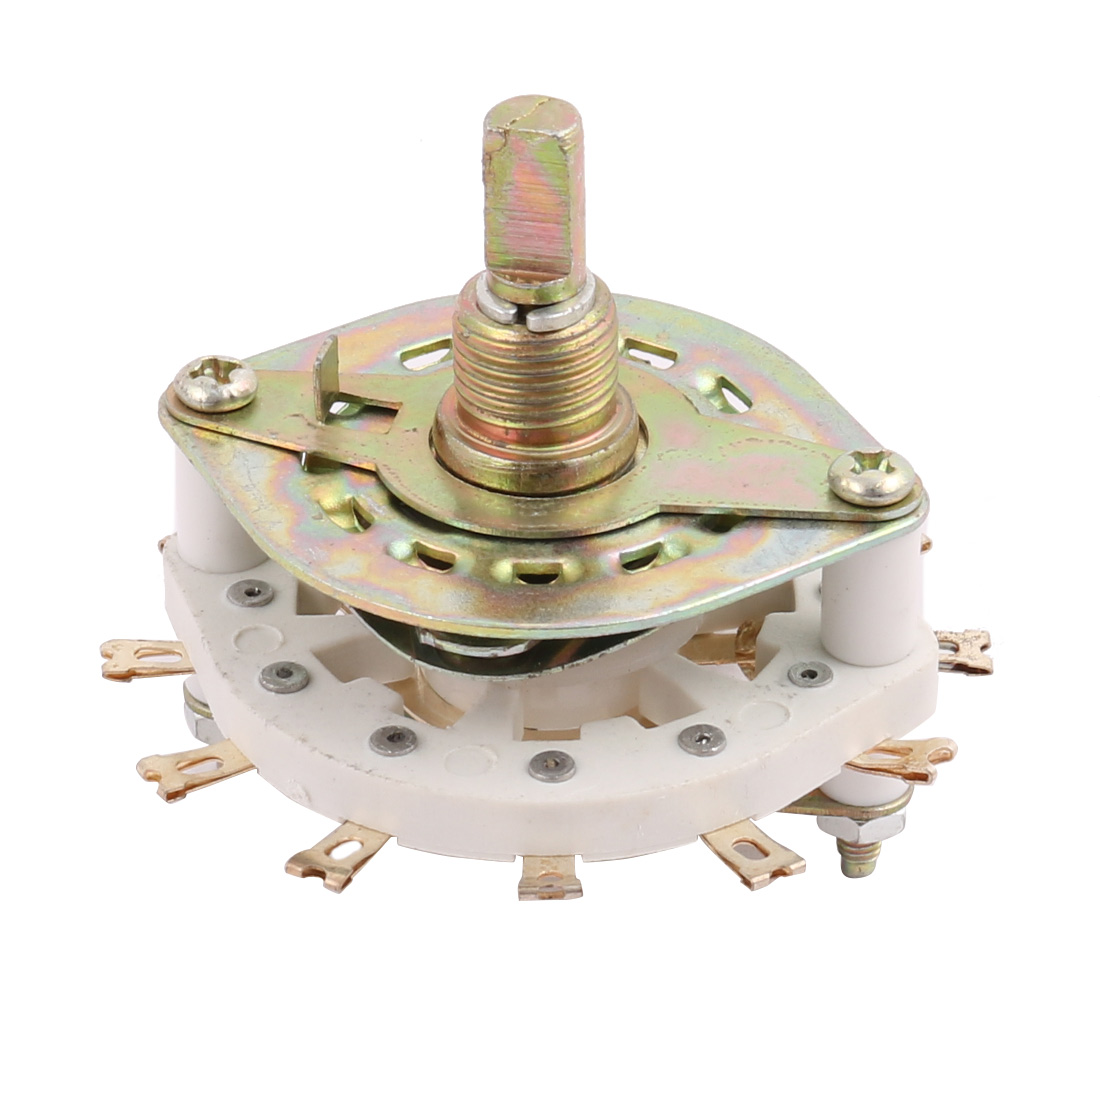 KCT2*5 2 Pole 5 Position 12 Terminal Band Channel Rotary Selector Switch